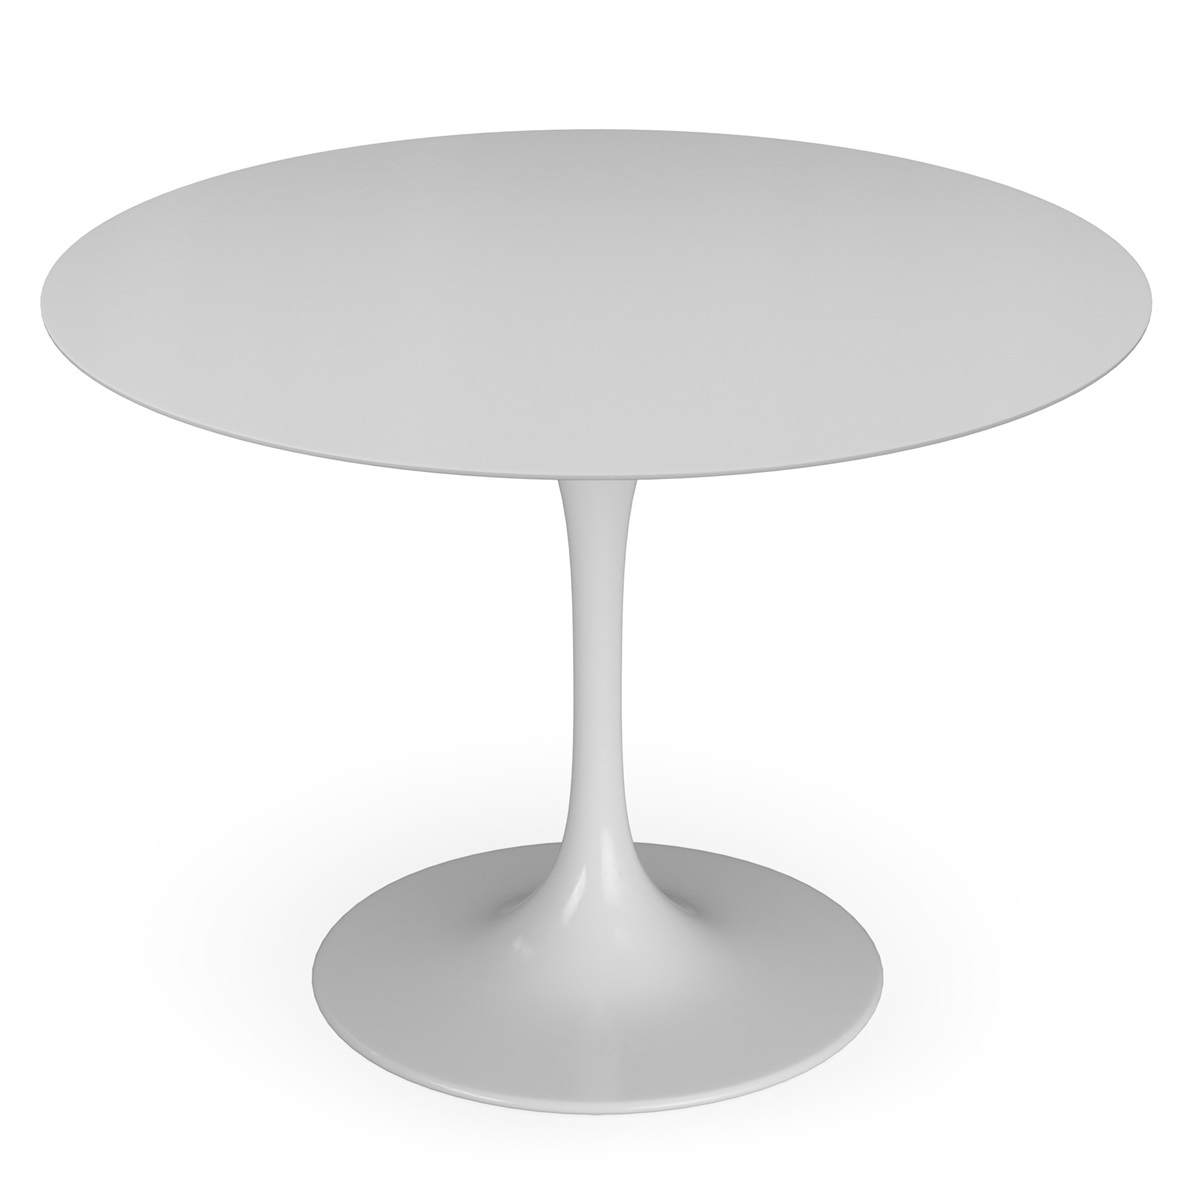 Saarinen Tulip Round Dining Table - Best saarinen tulip table reproduction